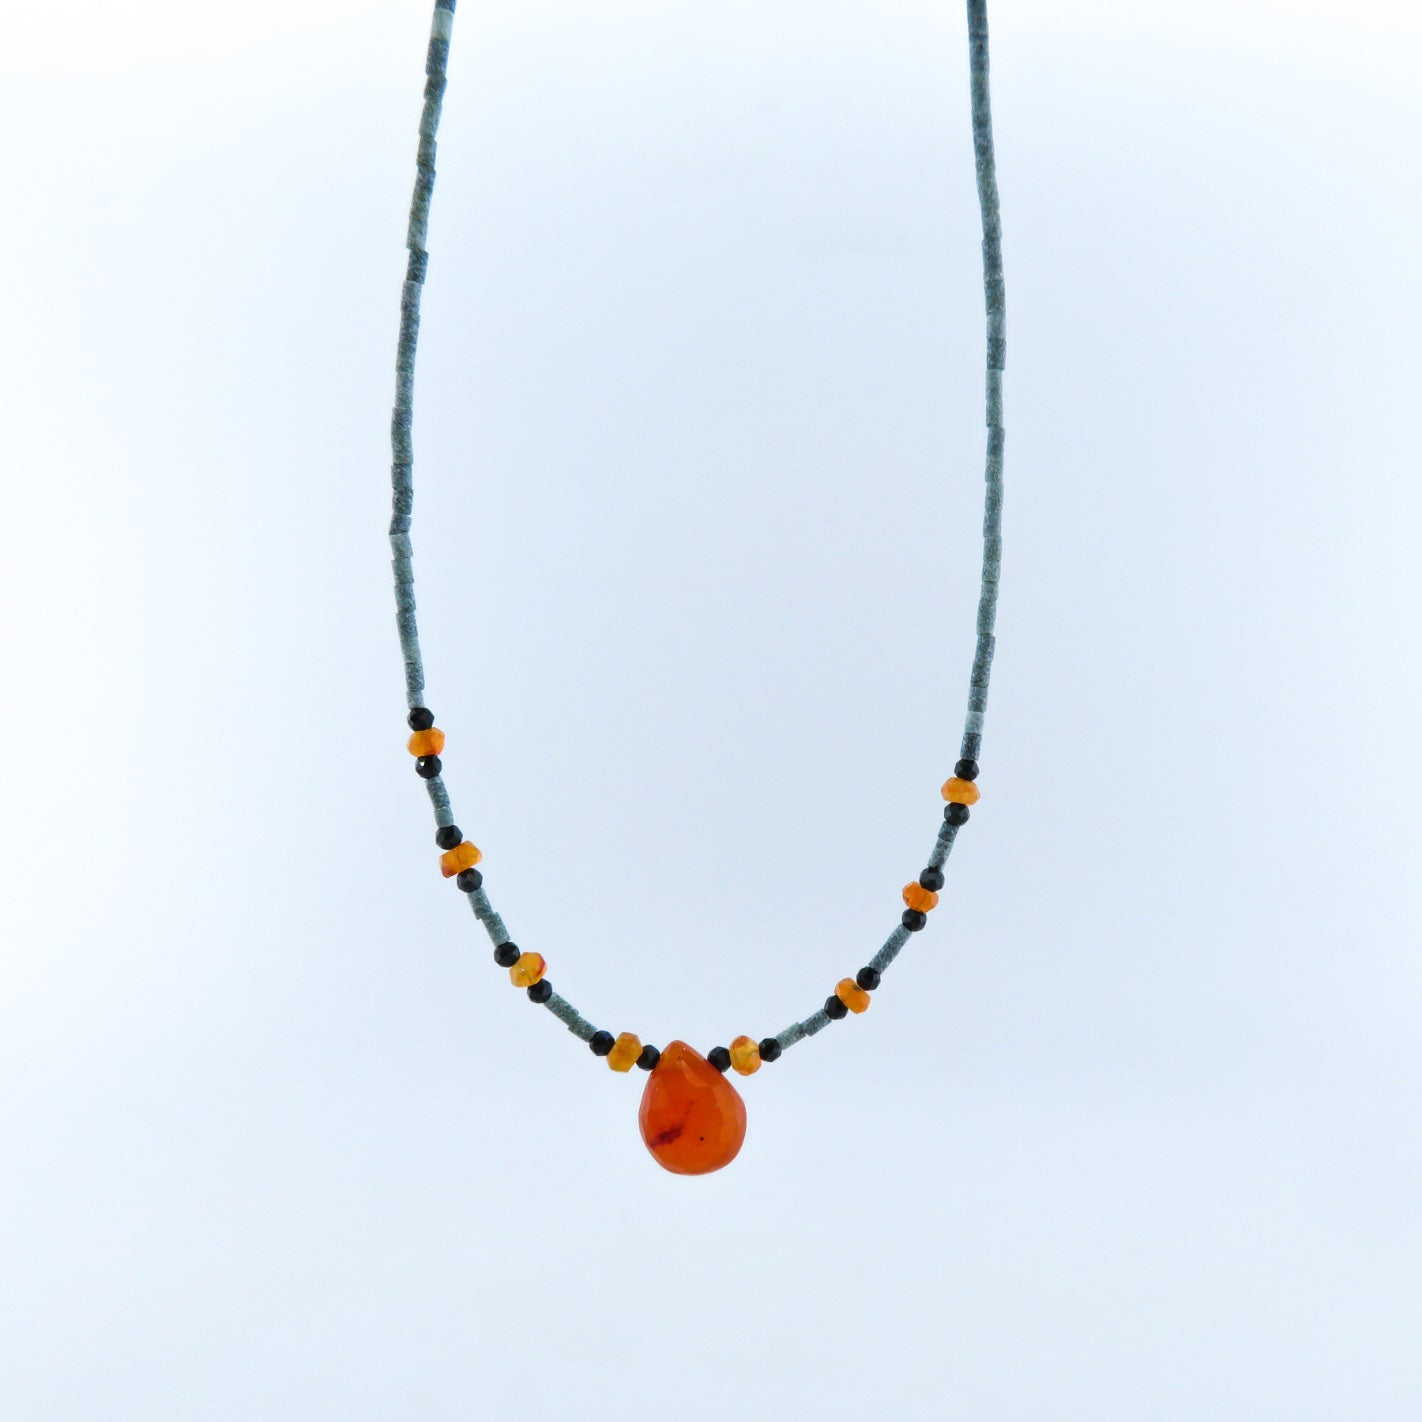 Jade Necklace with Carnelian, Black Onyx and Silver Beads